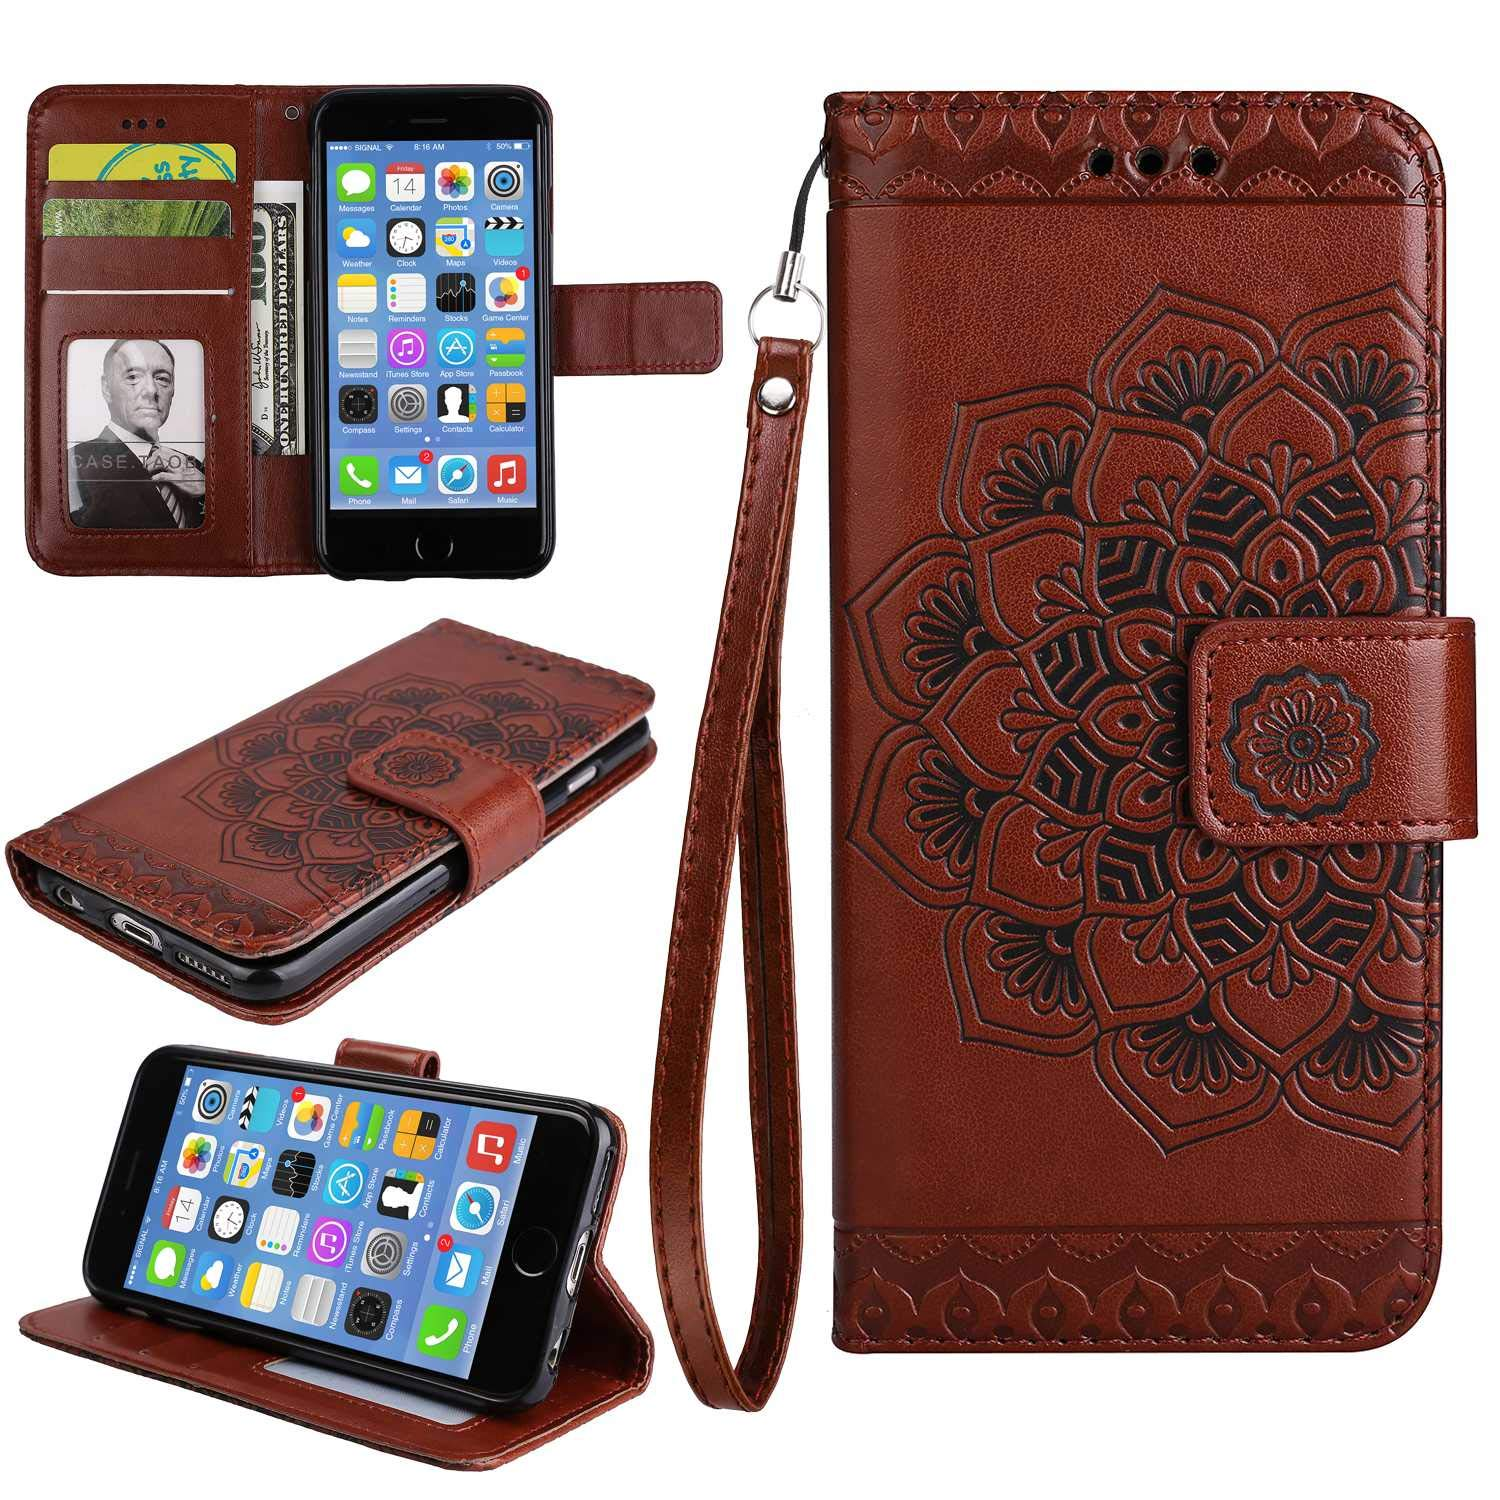 Galaxy S9 Case, Bear Village Leather Wallet Cover, Anti-Scratch Embossing PU Case with Magnetic Closure and Card Slots for Samsung Galaxy S9 (#8 Brown)